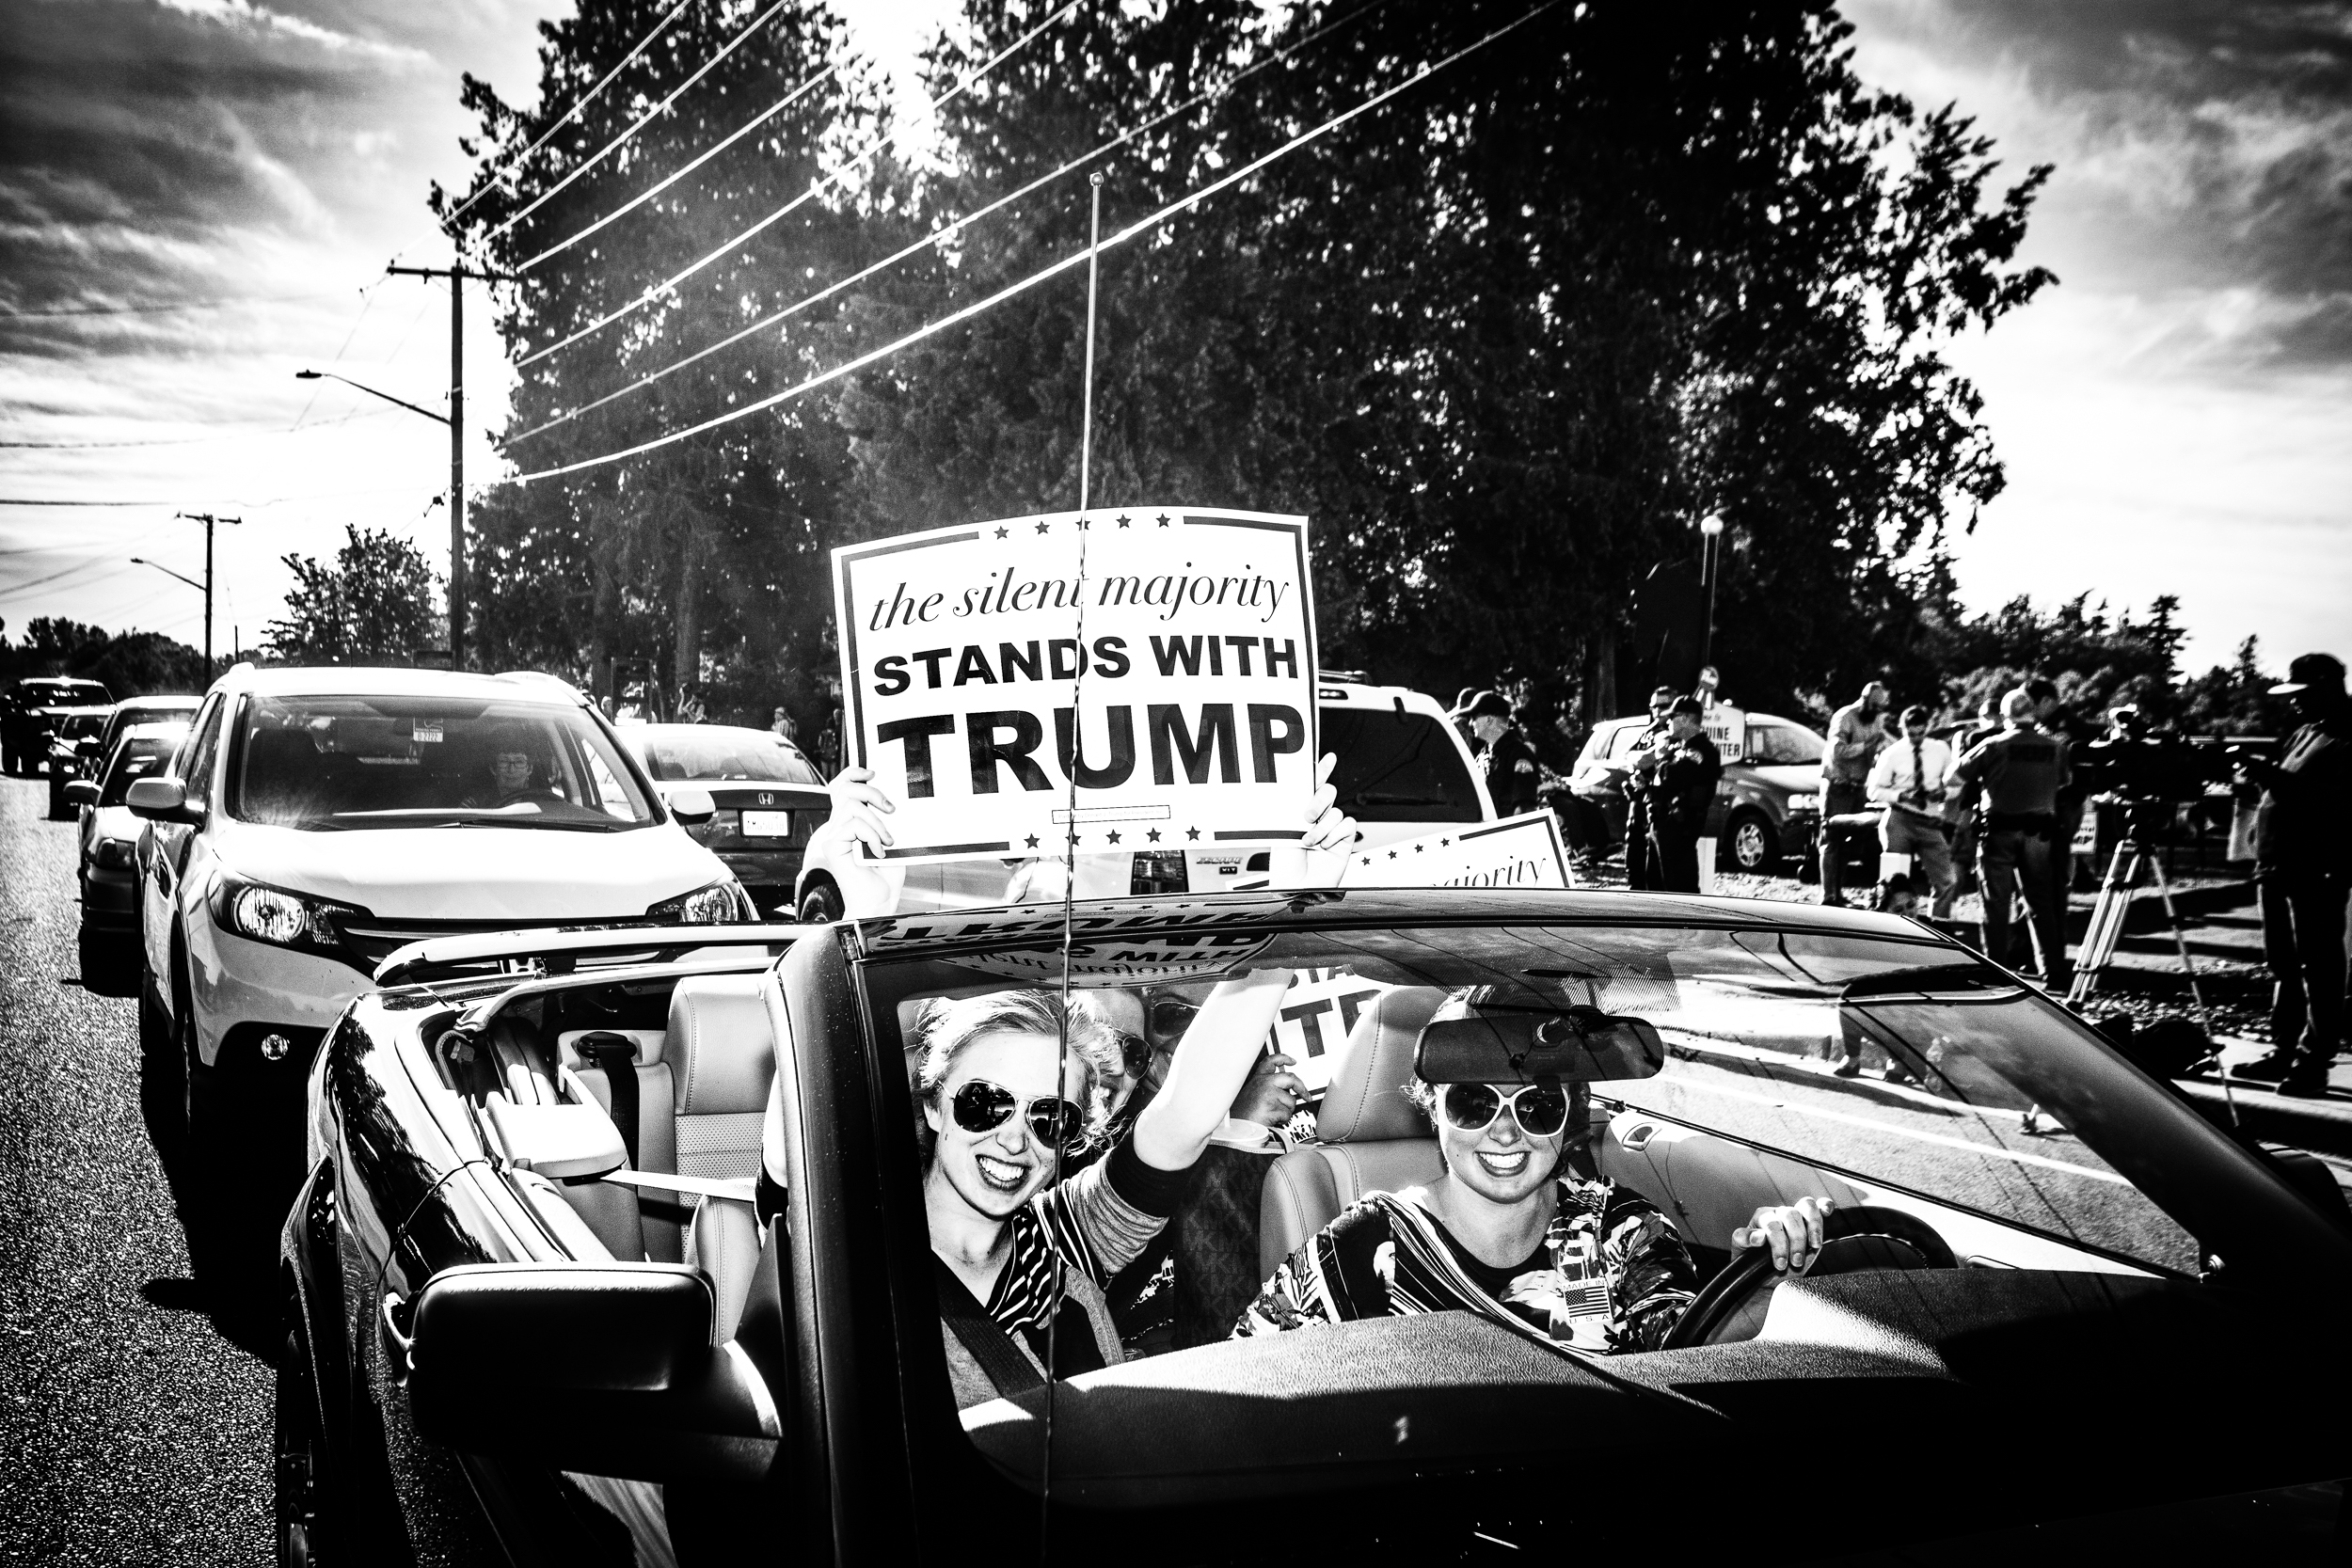 Convertible for Trump-1.jpg